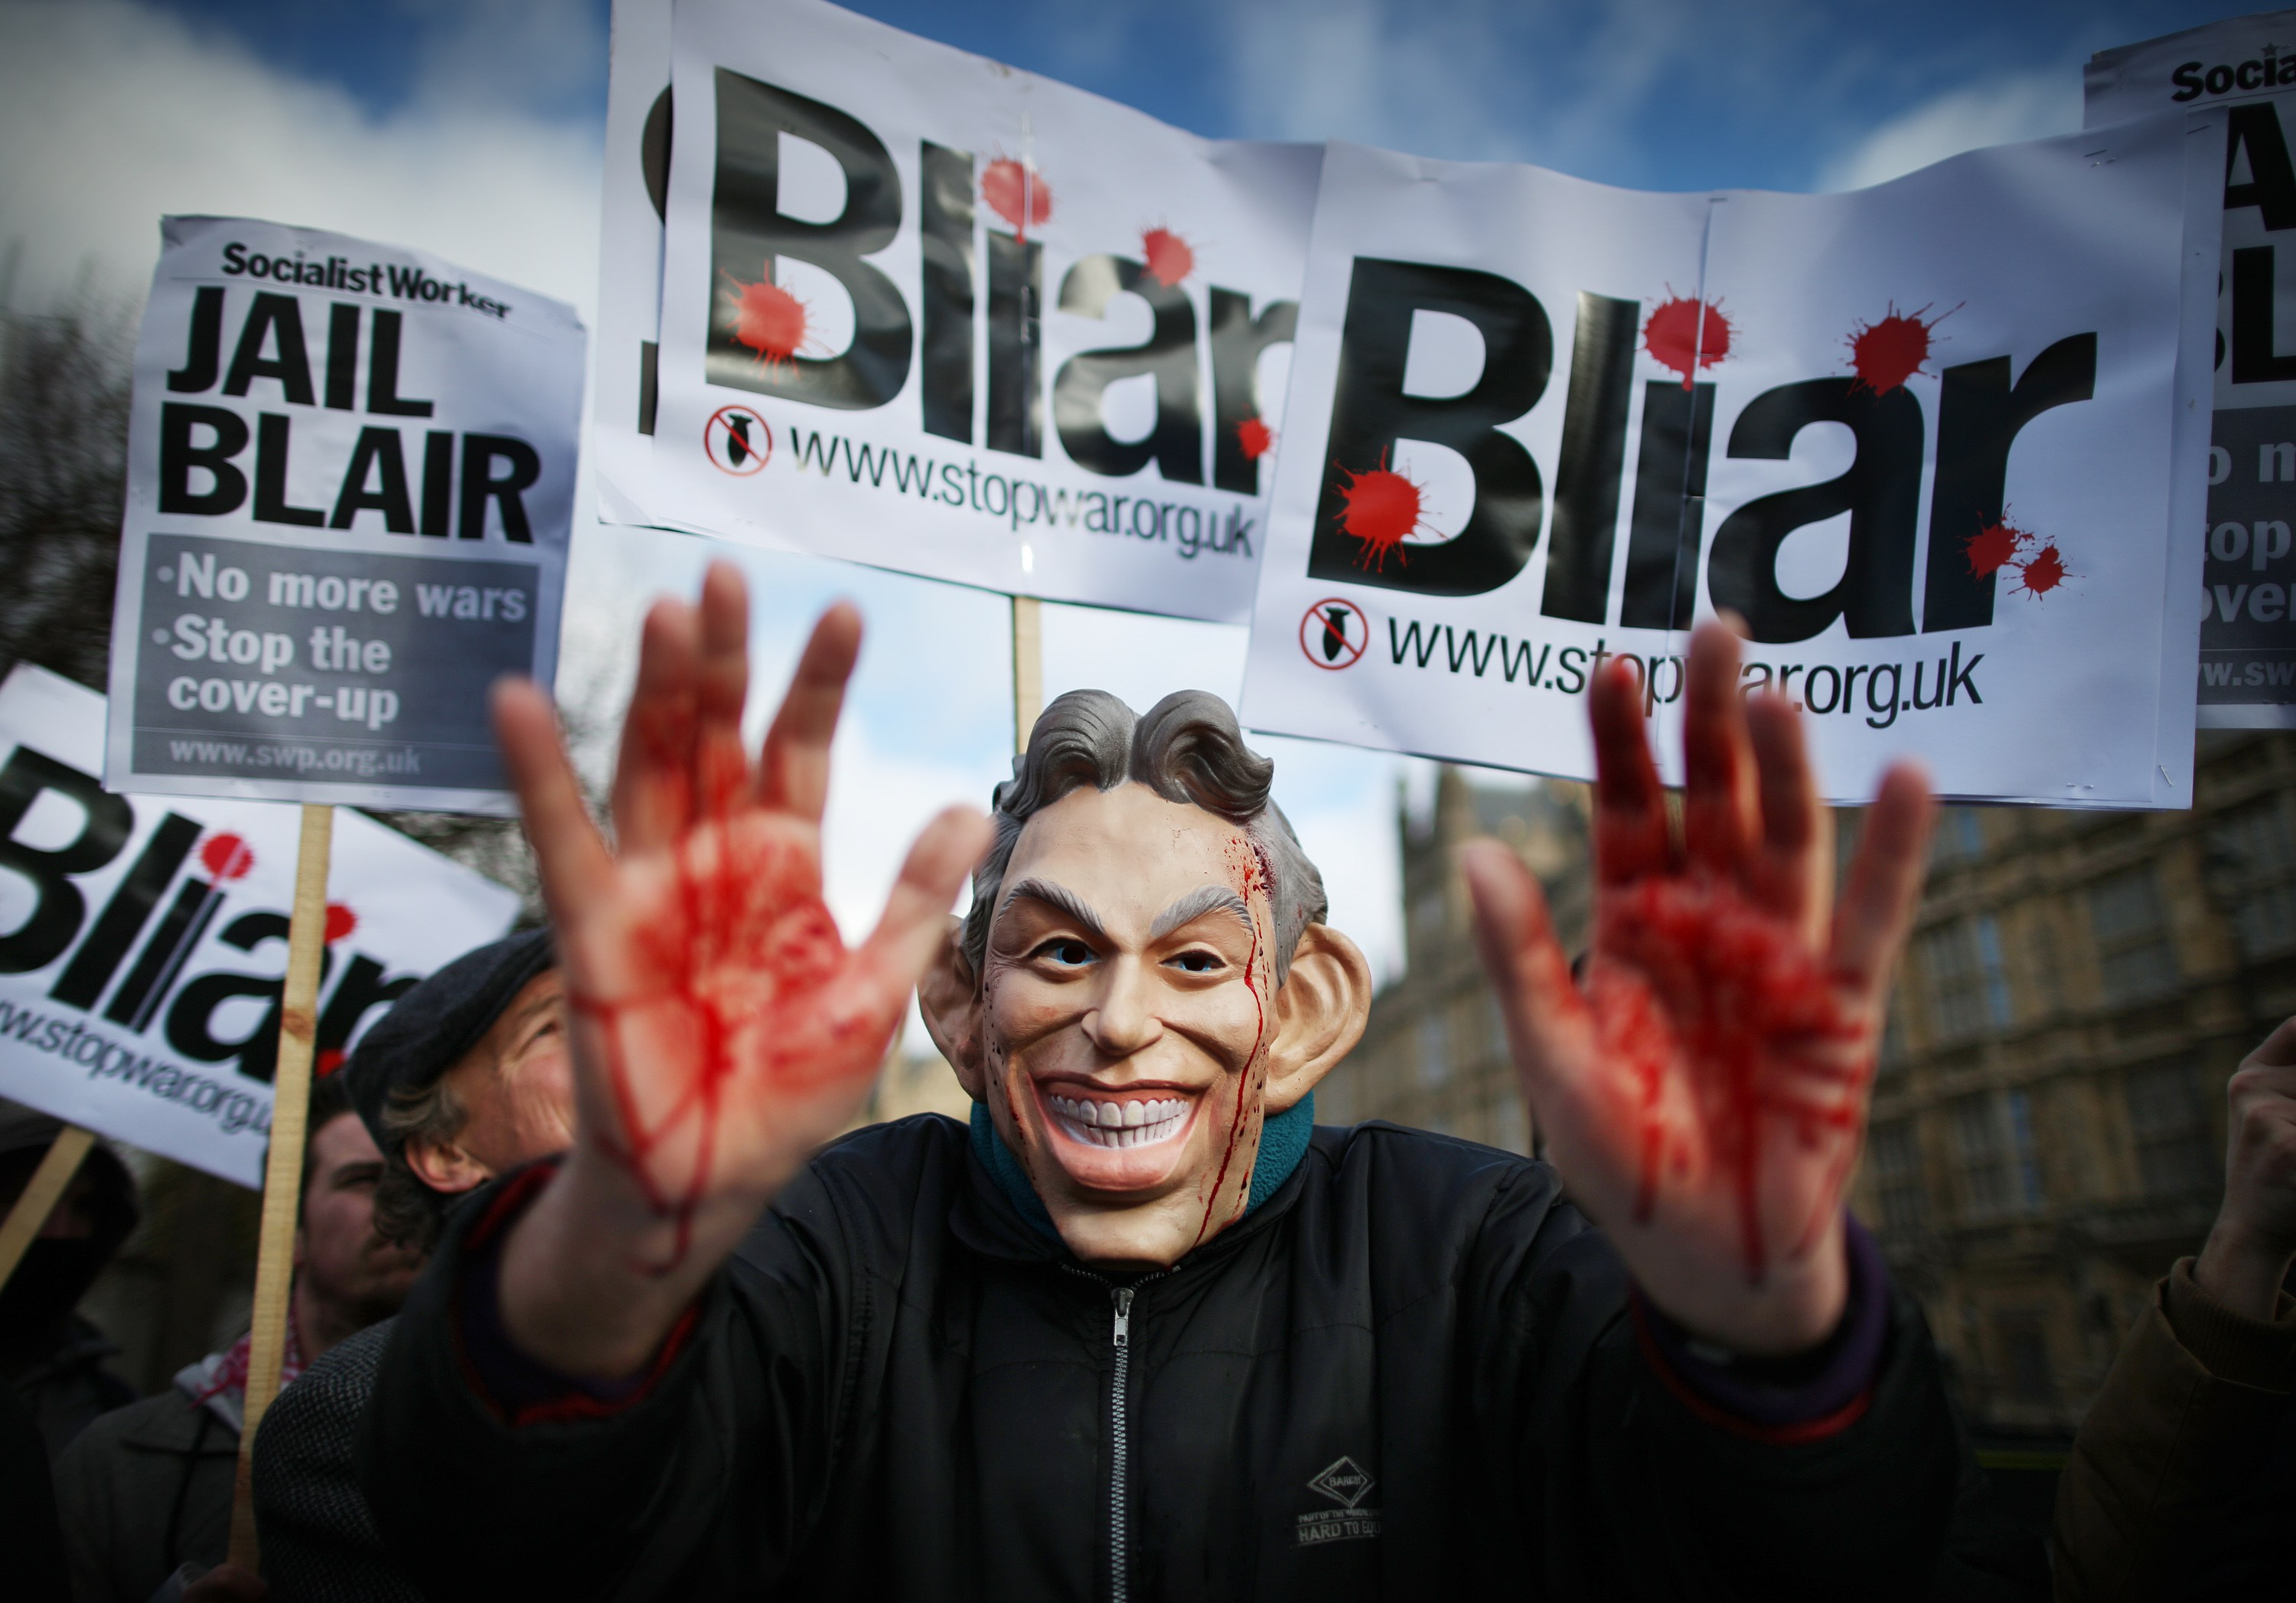 LONDON, ENGLAND - JANUARY 29: A Stop the War Coalition protestor, wearing a mask depicting Former Prime Minister Tony Blair, shows bloodied hands near Parliament on January 29, 2015 in London, England. Members of Parliament are today debating delays to the official inquiry into the Iraq War. The Chilcot inquiry began in 2009 and says it will not release it's final report until after the general election. (Photo by Peter Macdiarmid/Getty Images)